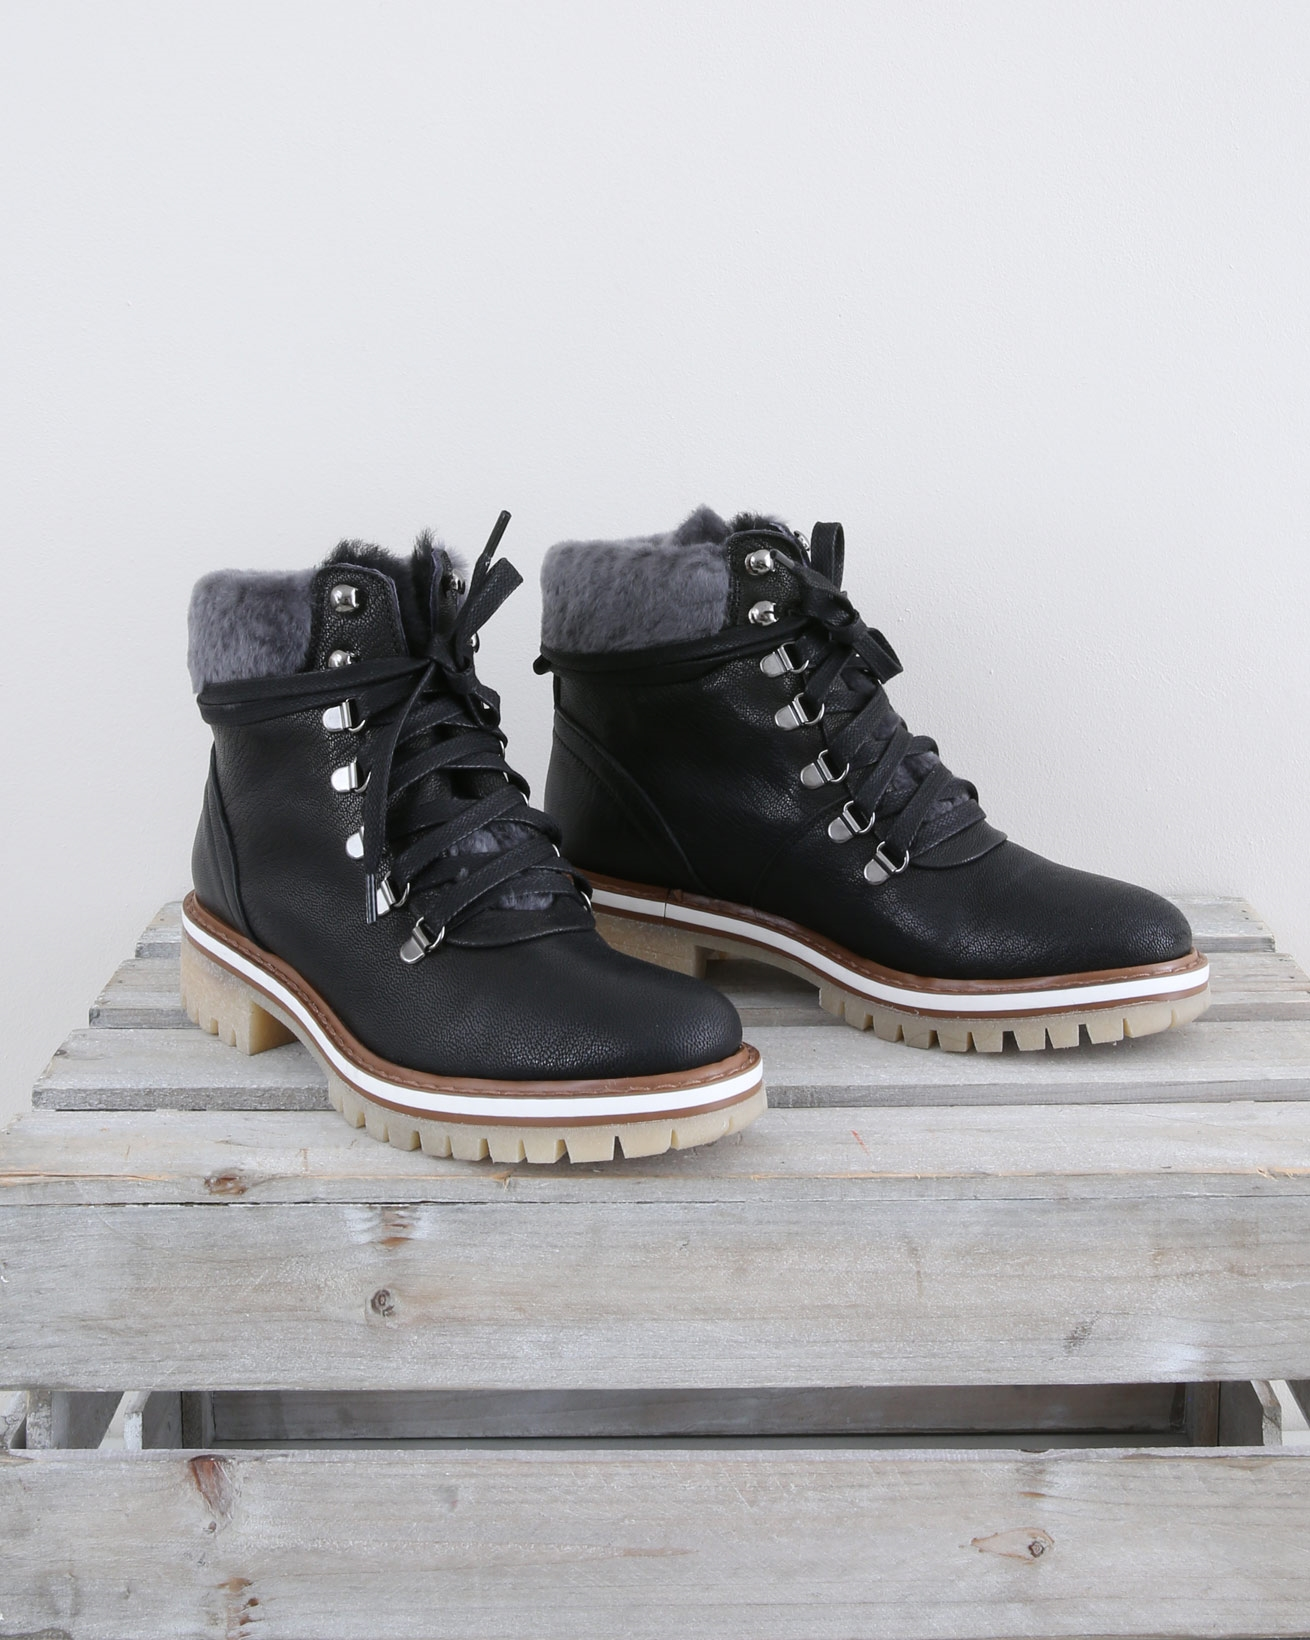 Leather Hiker Boot lined with sheepskin cuff - Size 37 - Black - 1455